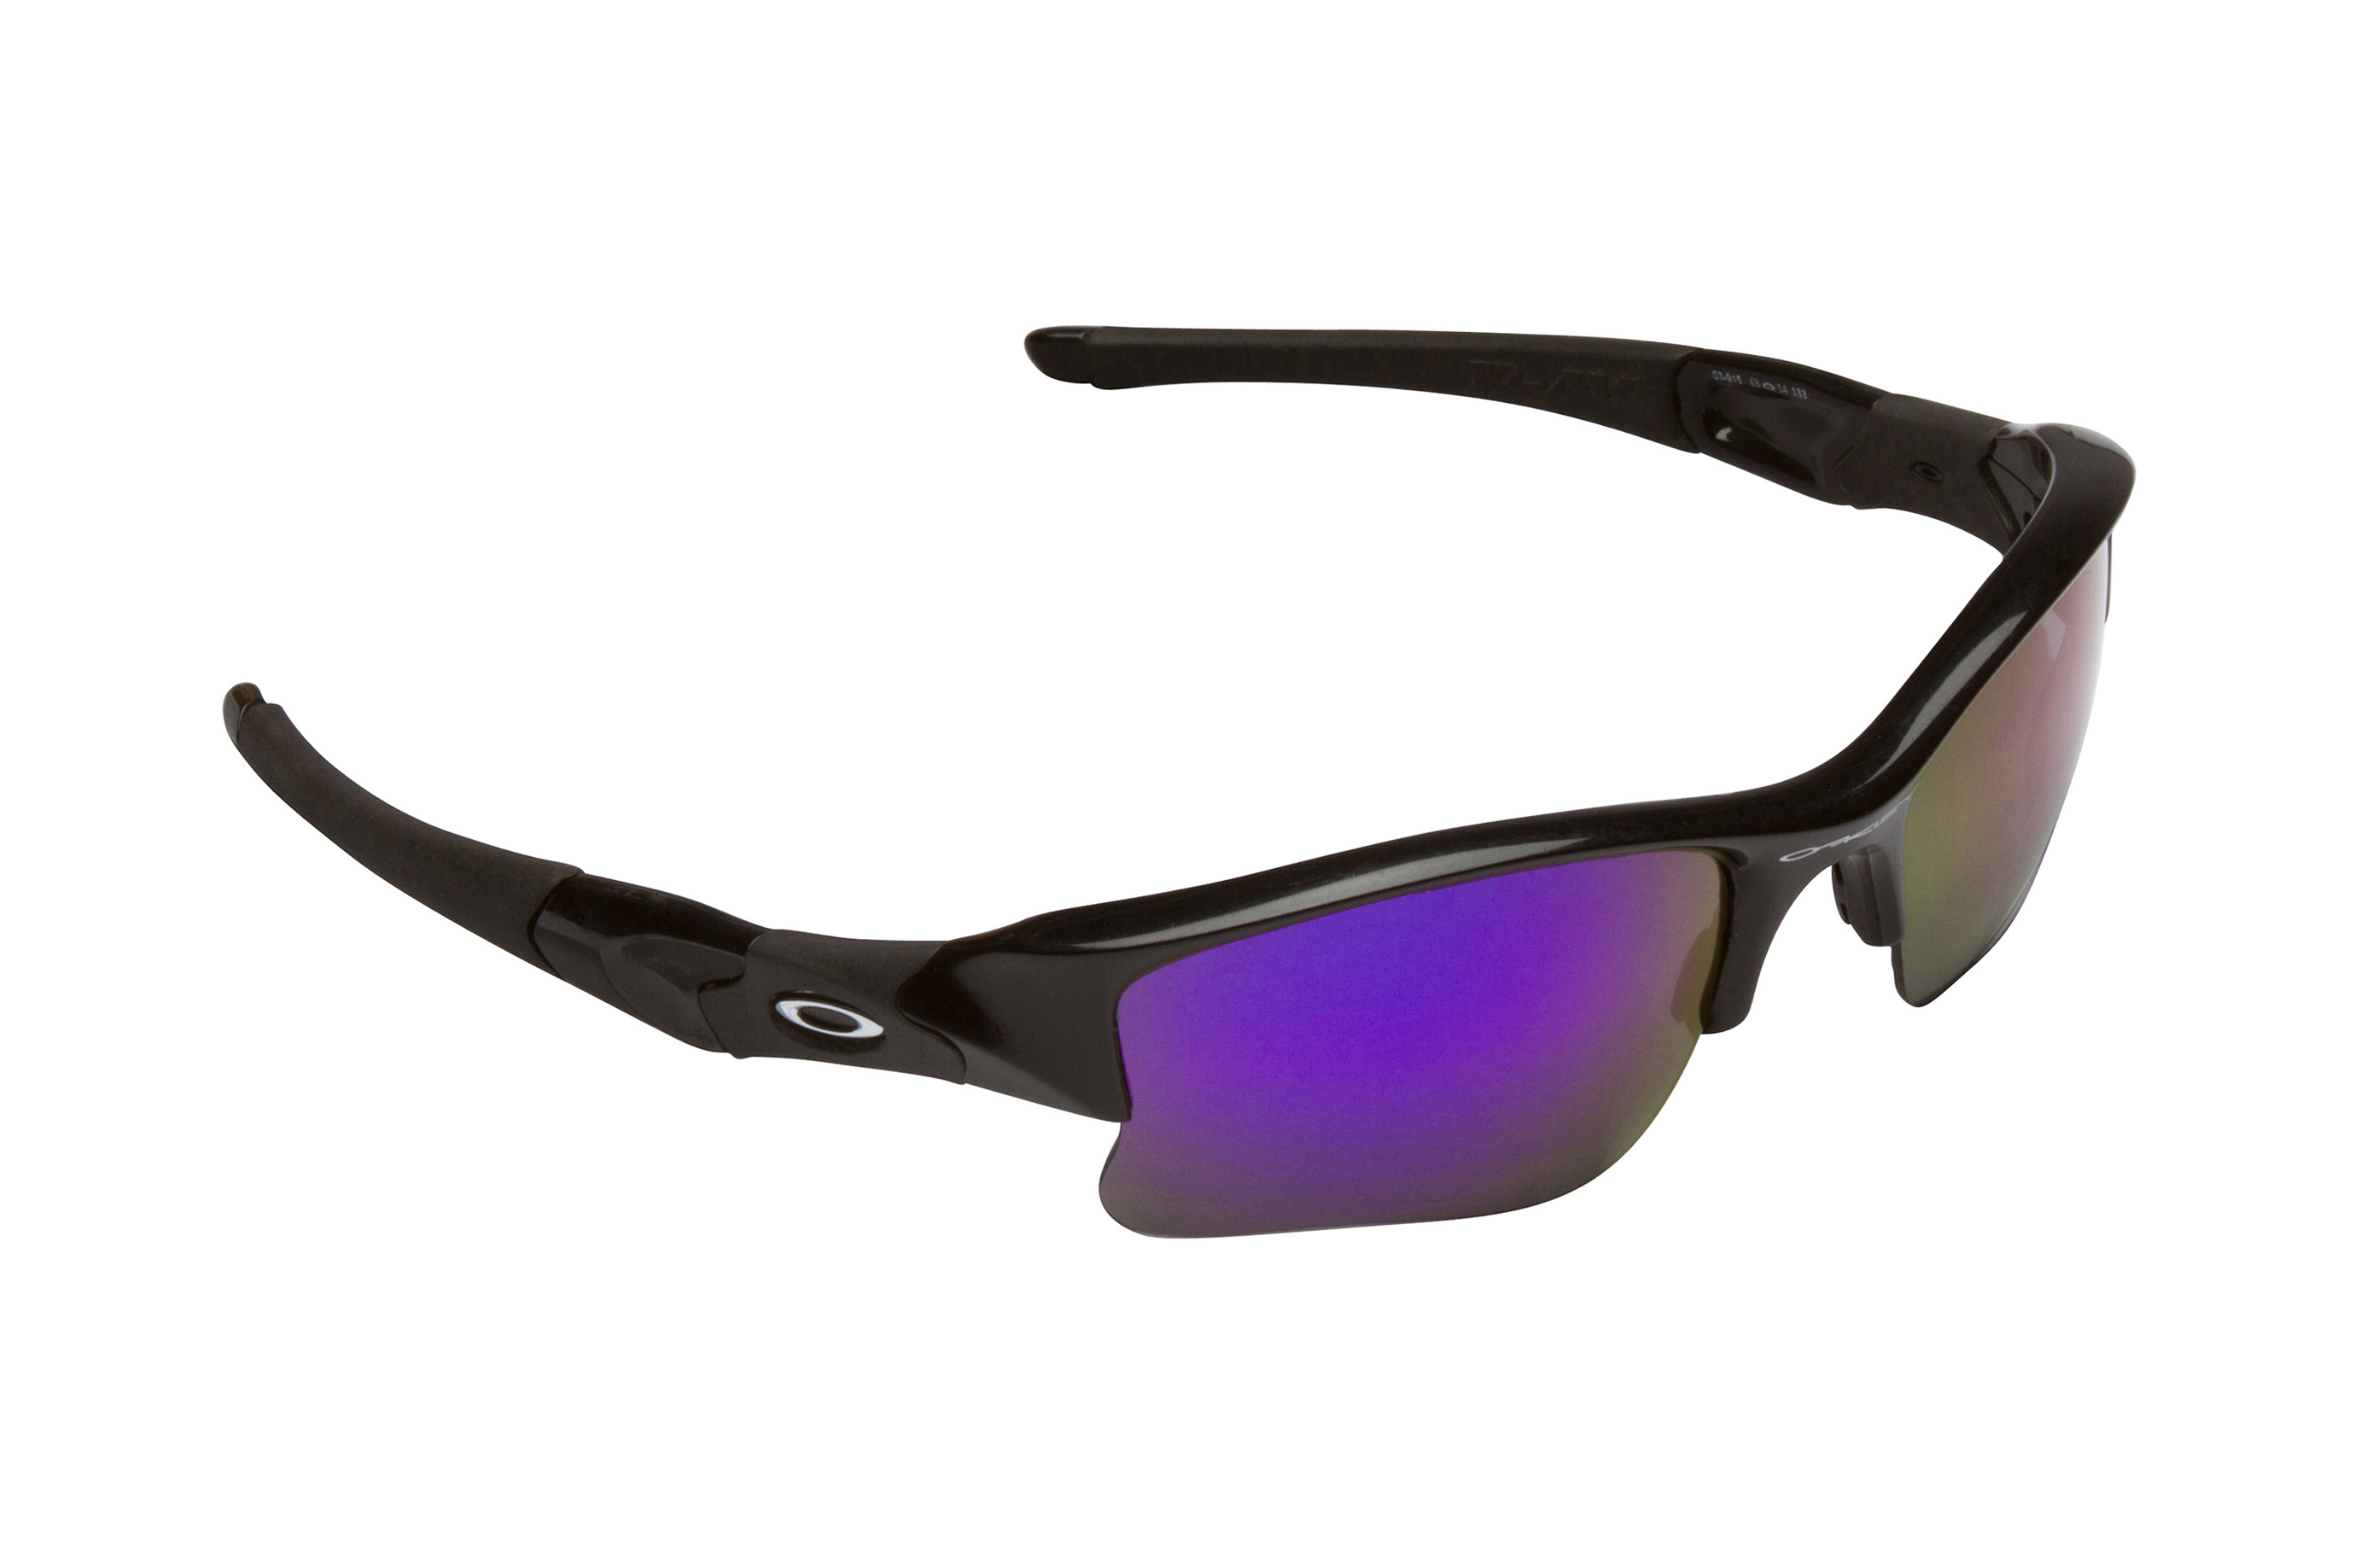 b4afe9e65362 Oakley Flak Jacket Replacement Frames Only « Heritage Malta